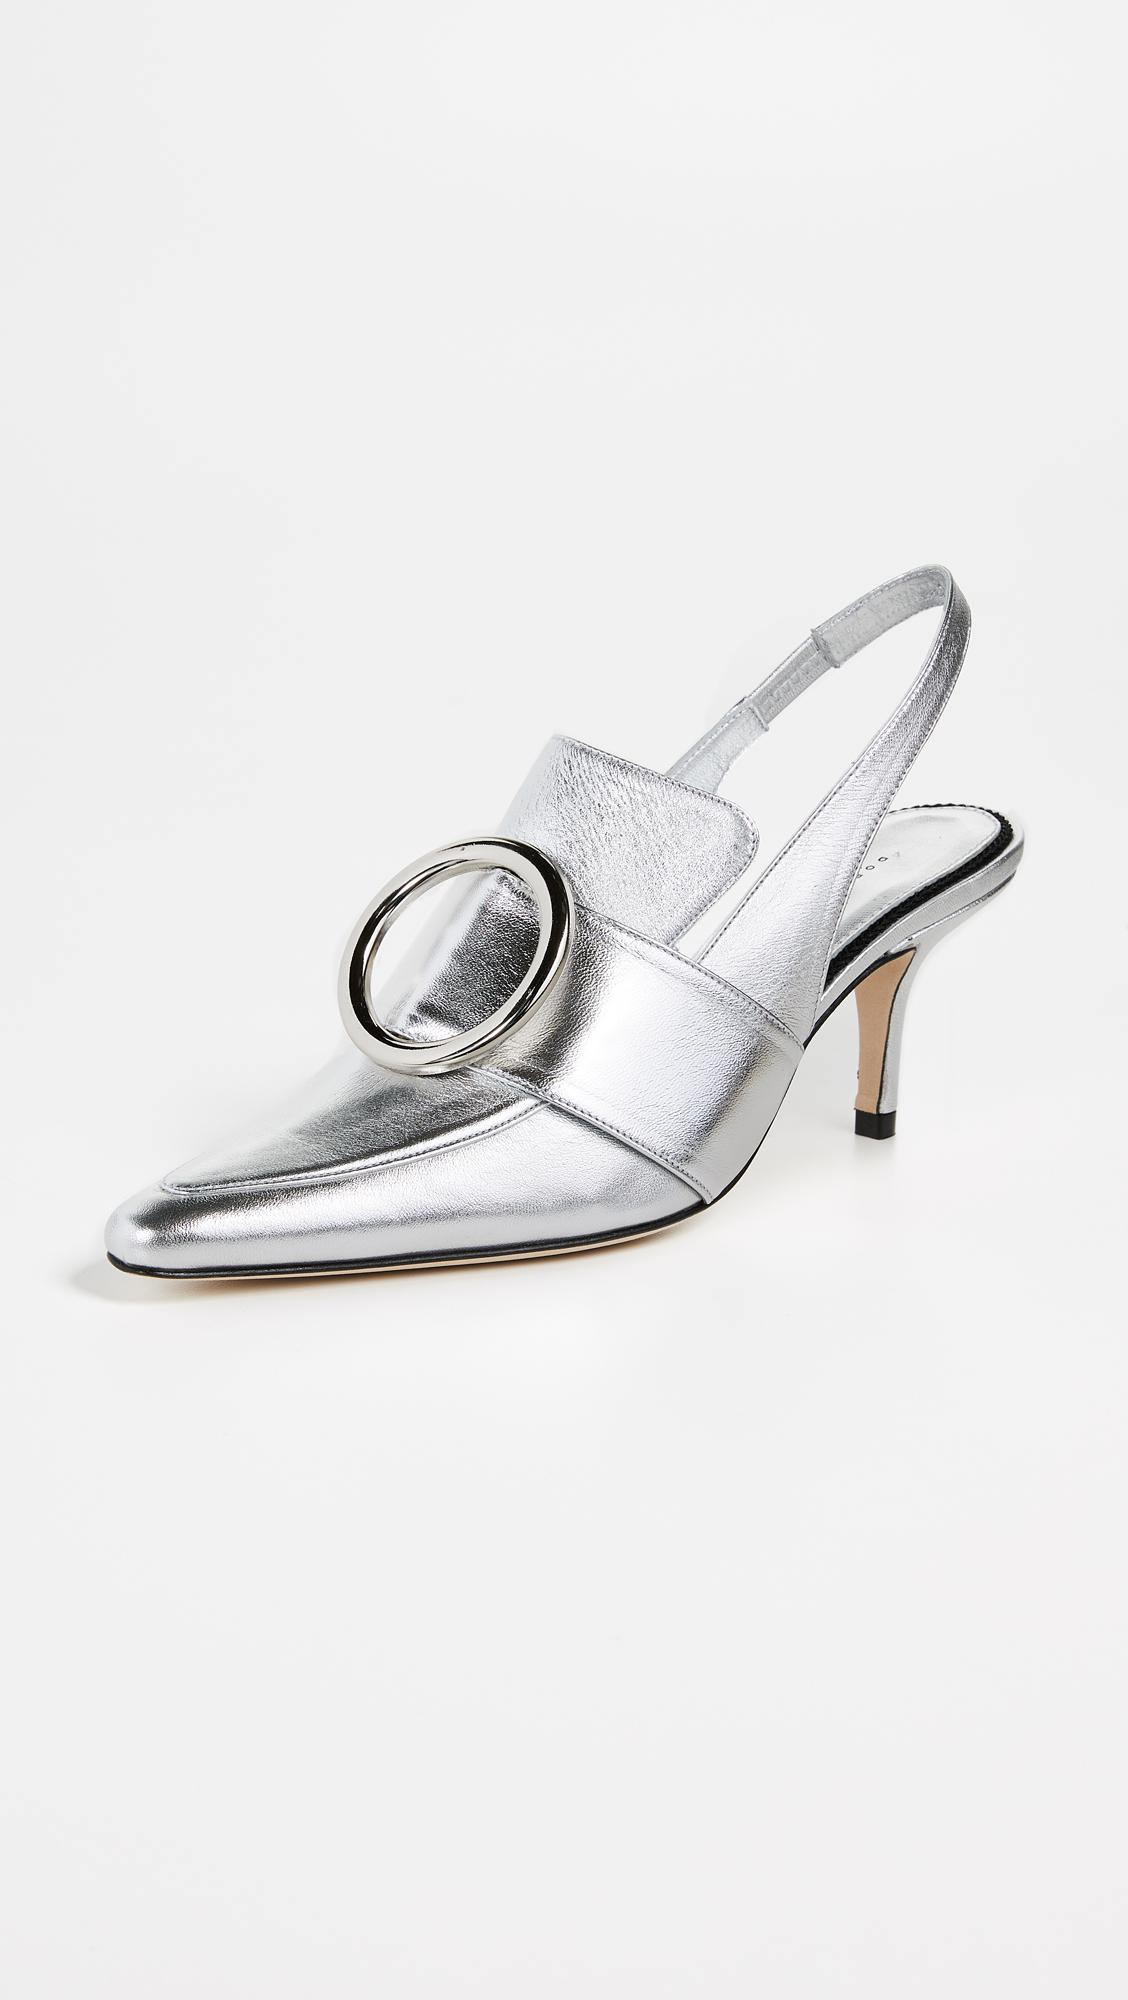 best sale sale online clearance from china Dorateymur Eagle patent leather slingback pumps outlet sneakernews sale tumblr low shipping for sale gsyr9bu